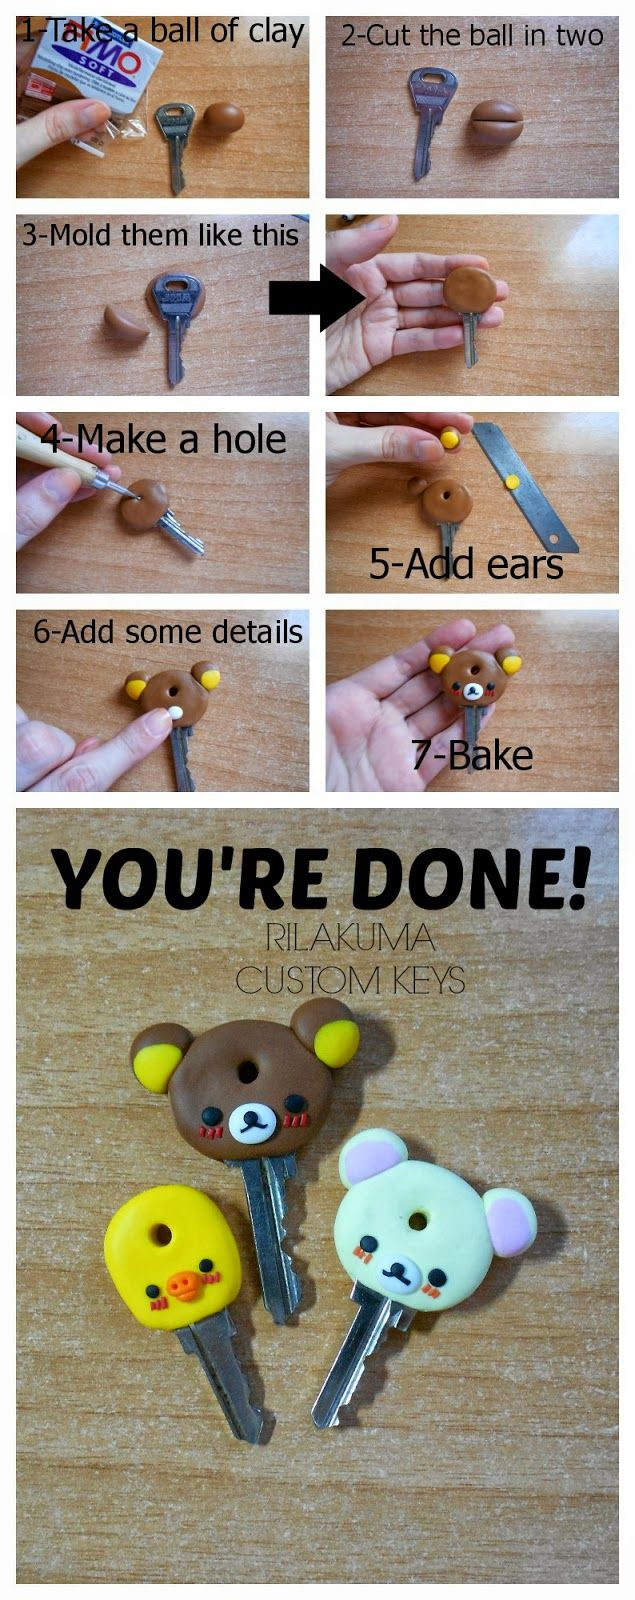 Loveable DIY Rilakkuma polymer clay custom keys tutorial